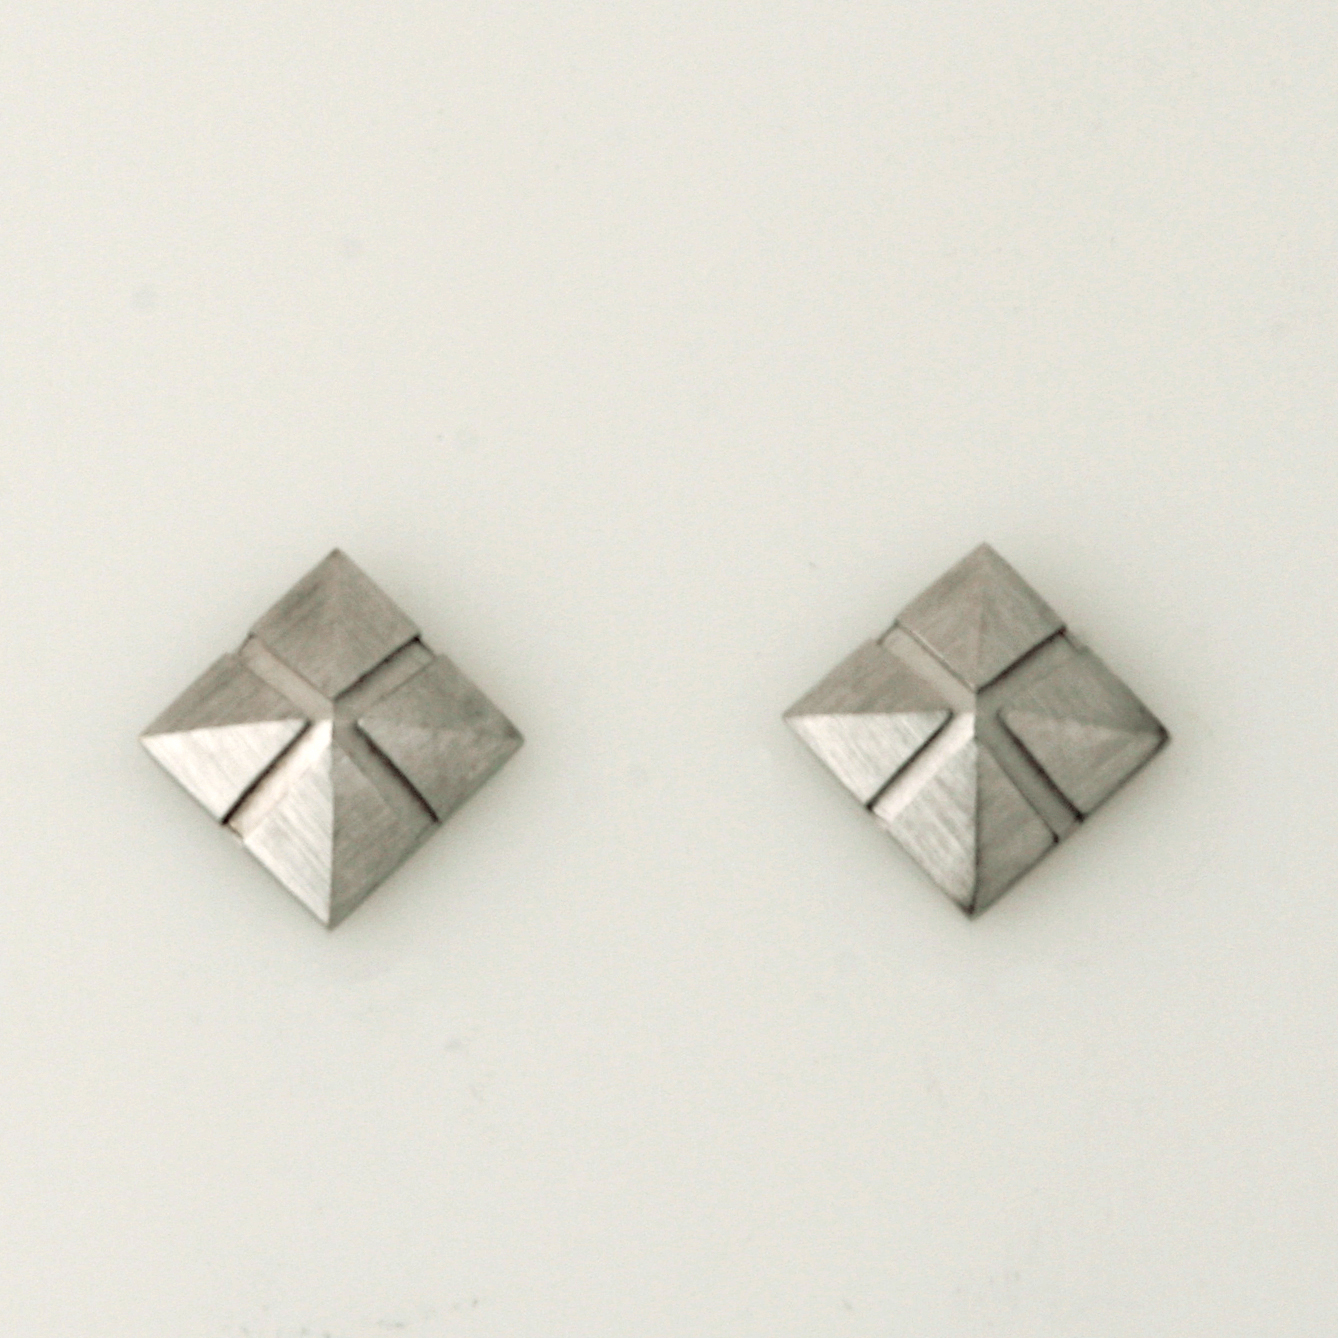 E050 9ct white gold square pyramid stud earrings $280